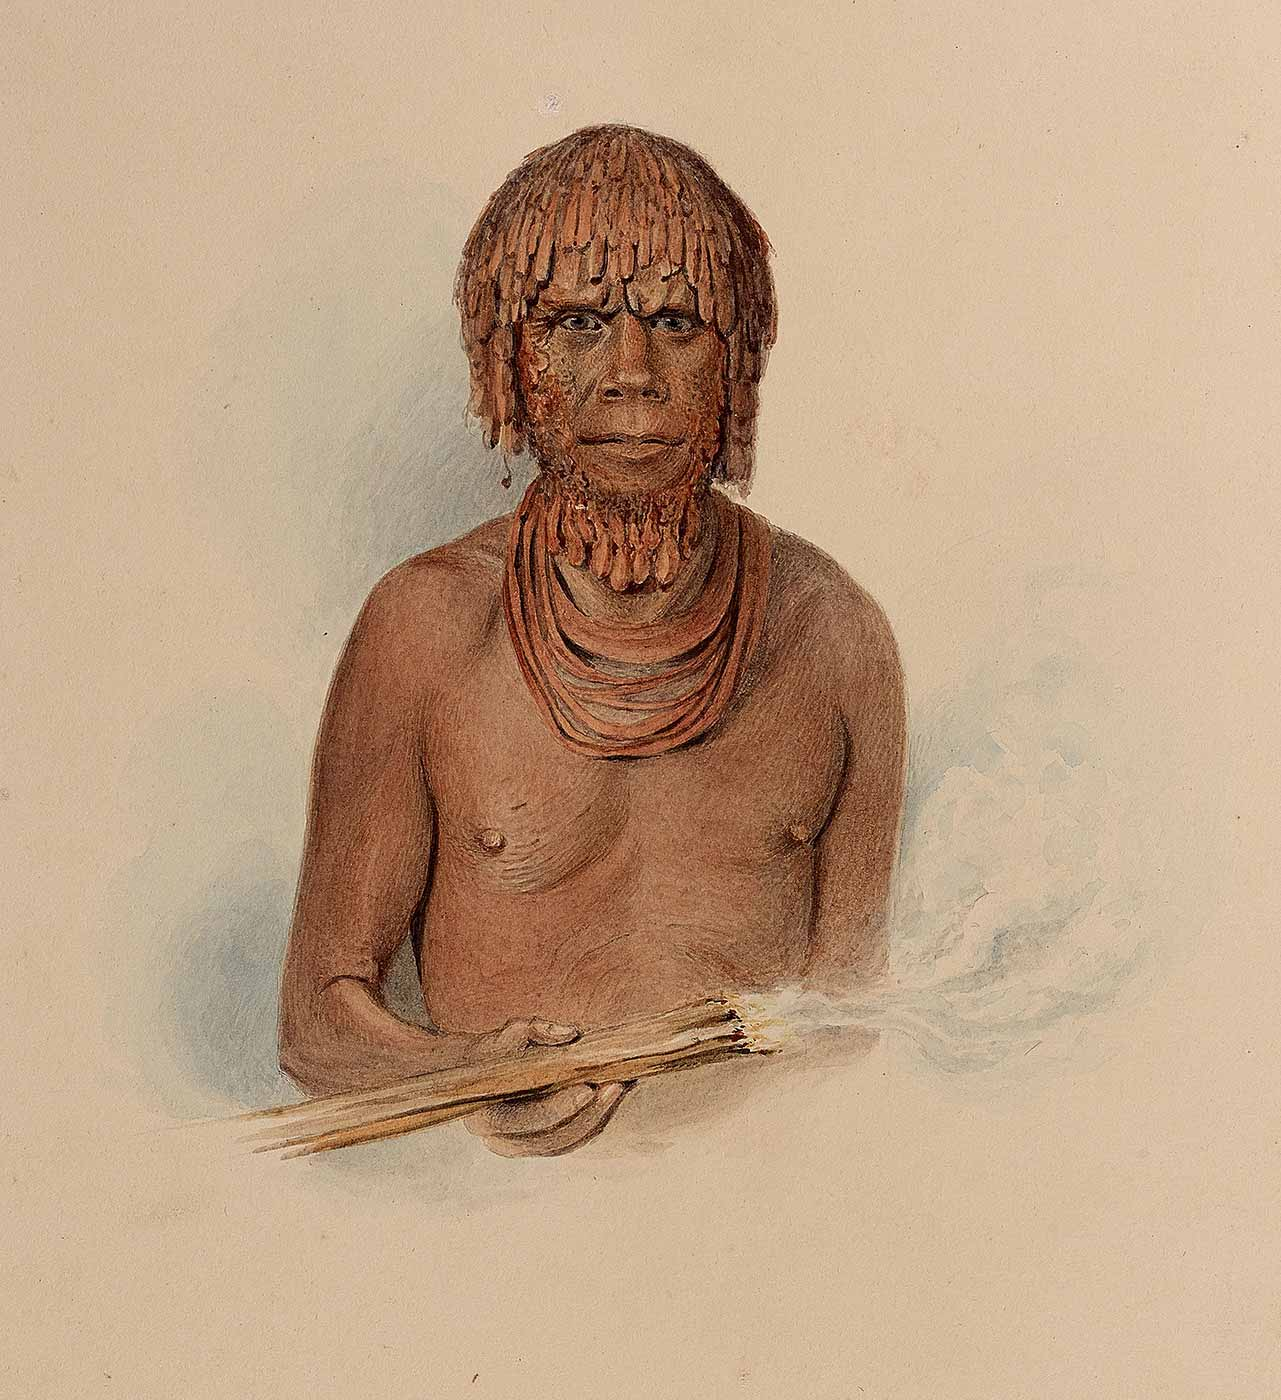 Drawing; watercolour, of a man with bare chest, dressed hair and beard. He is wearing necklaces and holding a fire stick - click to view larger image